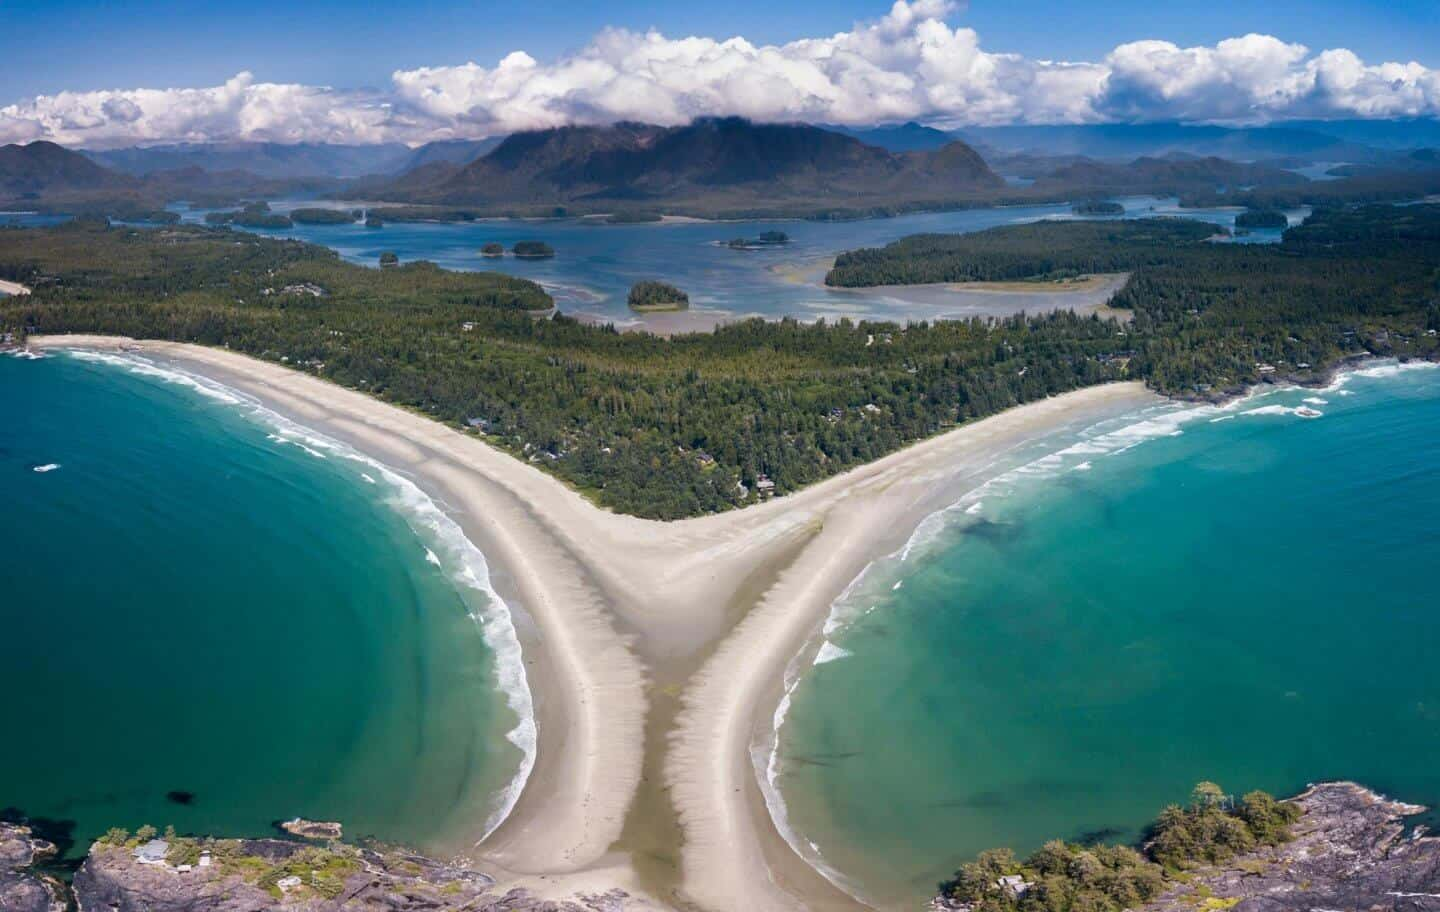 The perfect hourglass shapes of Chesterman Beach in Tofino is truly appreciated from the sky!